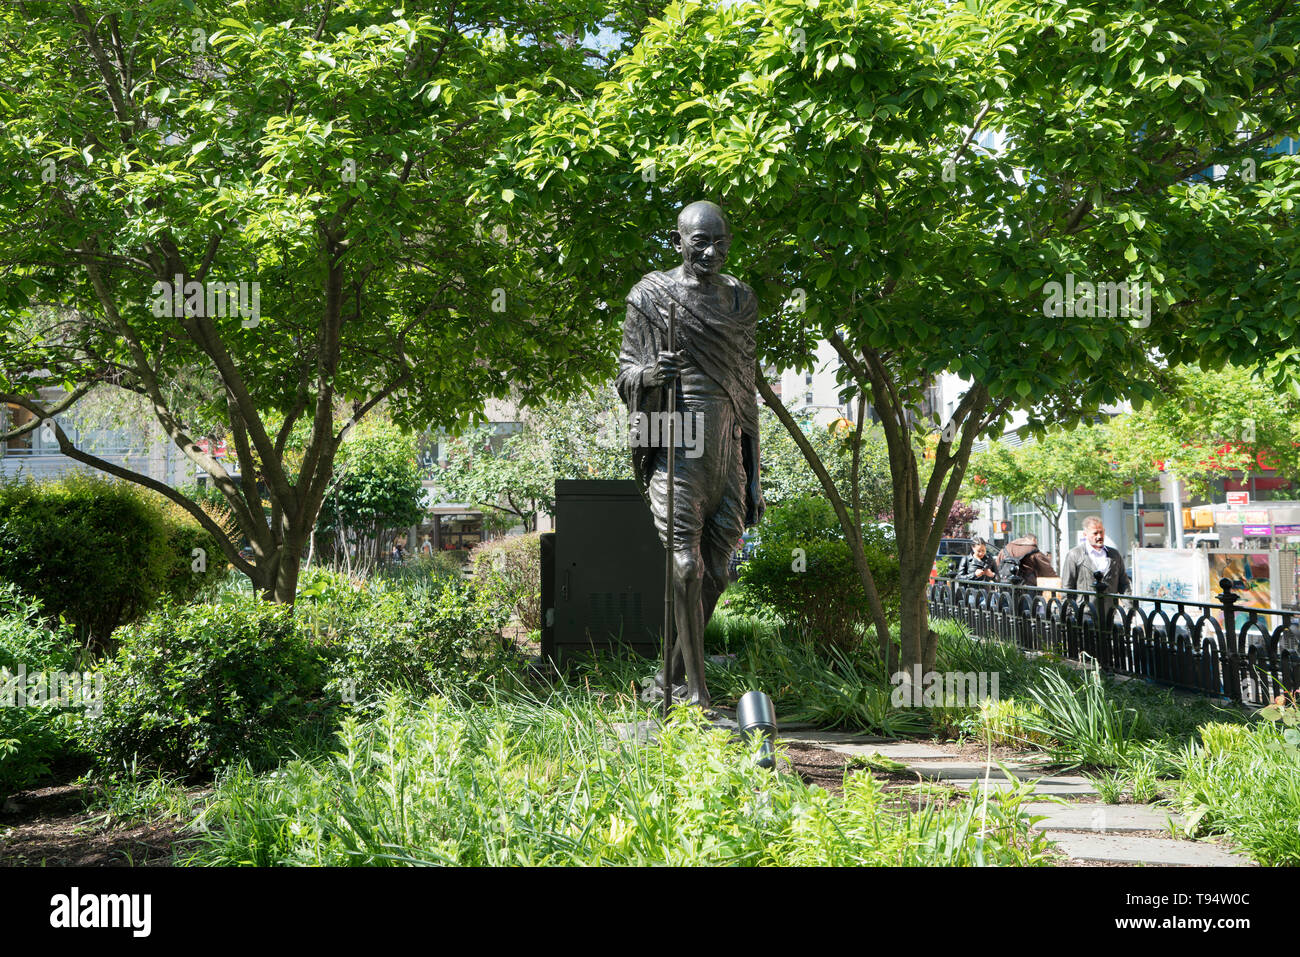 A bronze sculpture in Union Square Park depicting Mohandas Gandhi (1869–1948), was dedicated on Oct. 2, 1986, the 117th anniversary of Gandhi's birth. - Stock Image